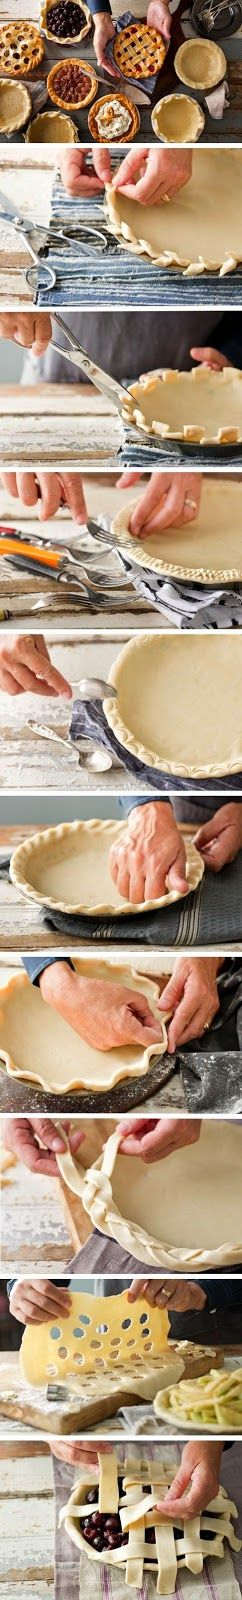 9 Pie crust how-tos - all the tricks you need to make the perfect pie crust! Make sure to use your gluten free pie crust recipes!!